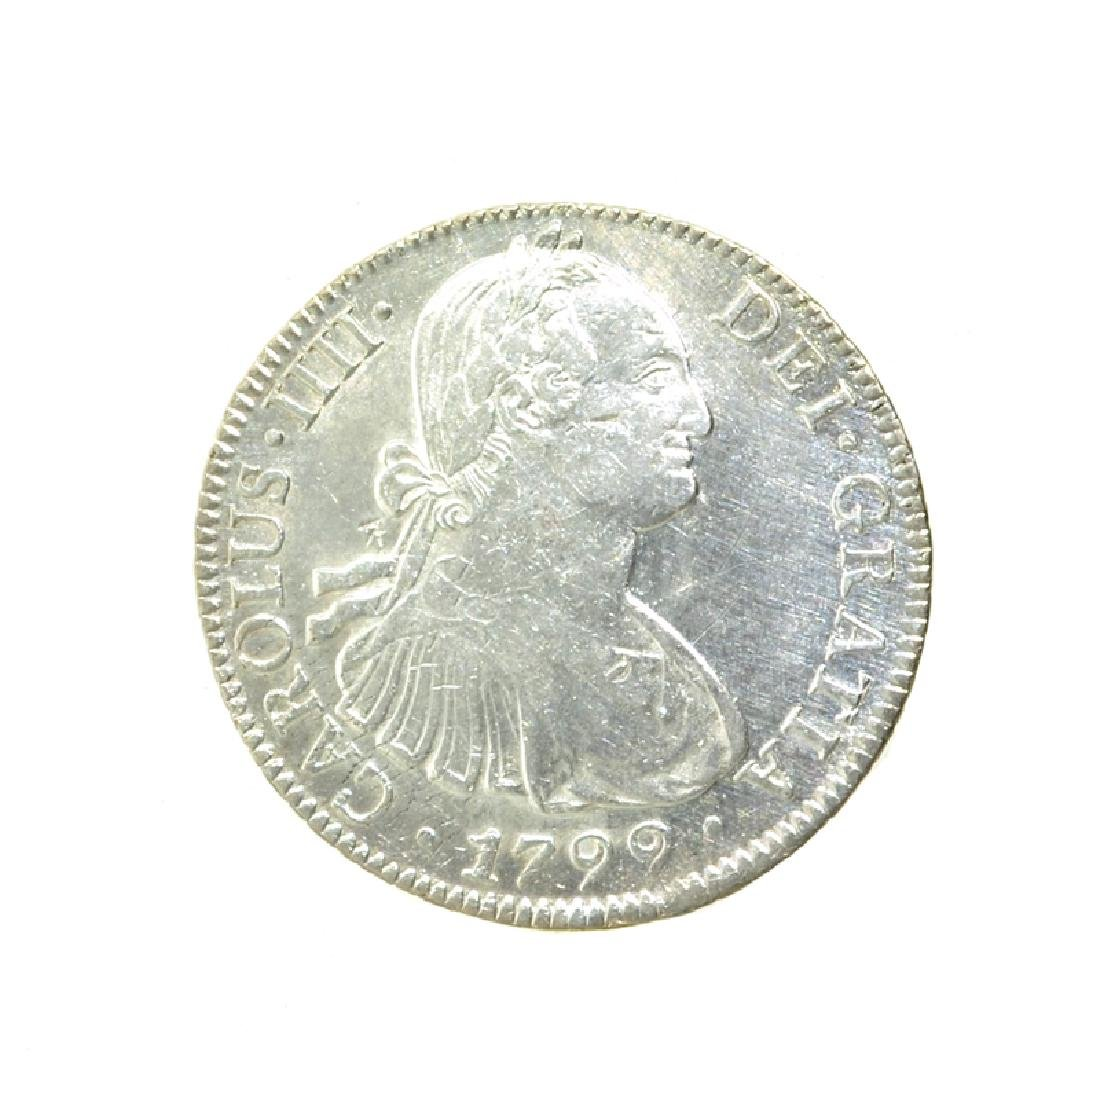 1799 Extremely Rare Eight Reales American First Silver